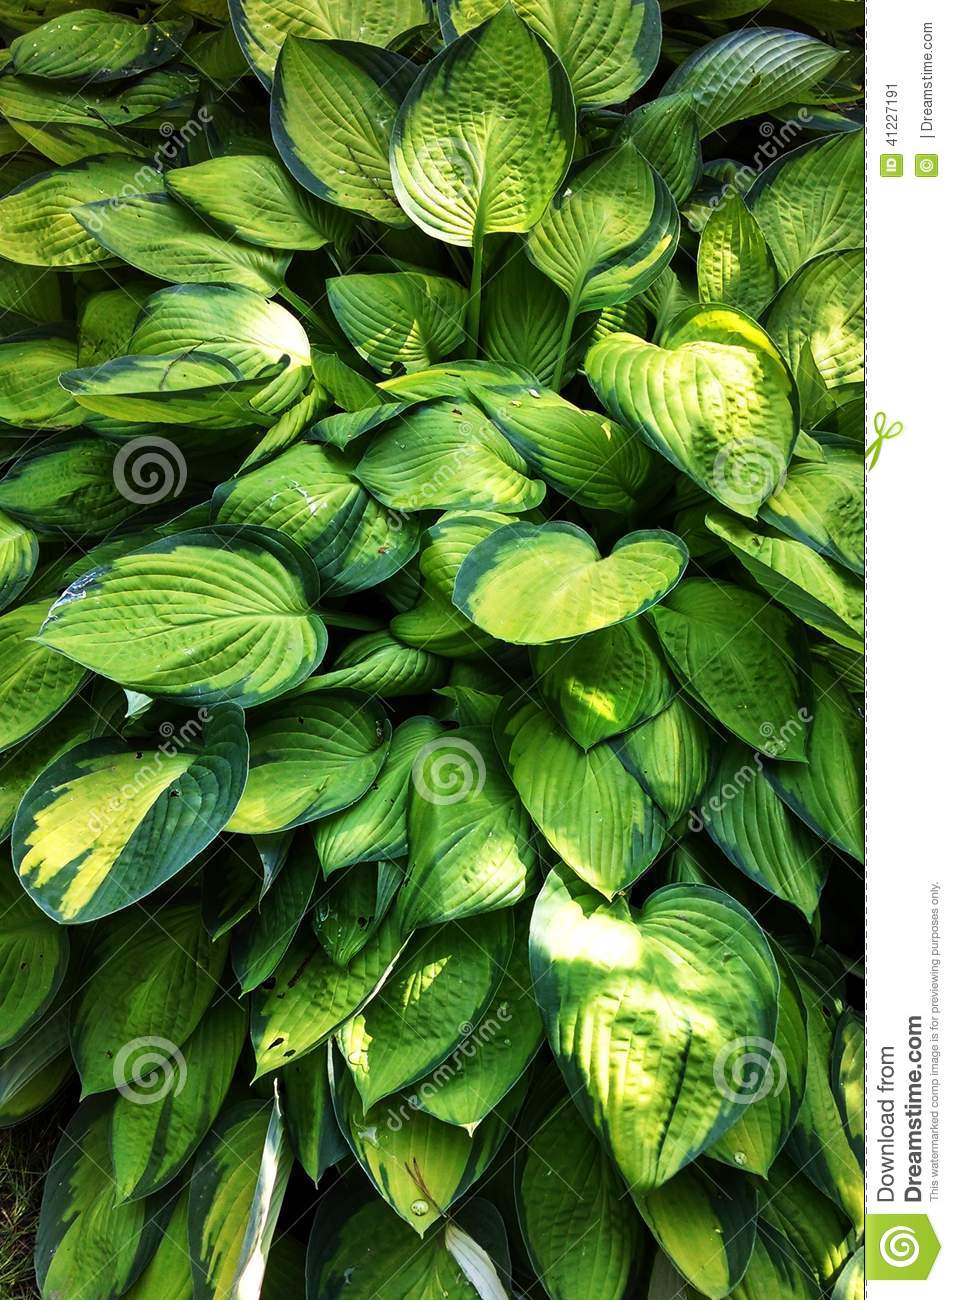 Hosta Stock Image Image Of Environmentally Larger Friendly 41227191